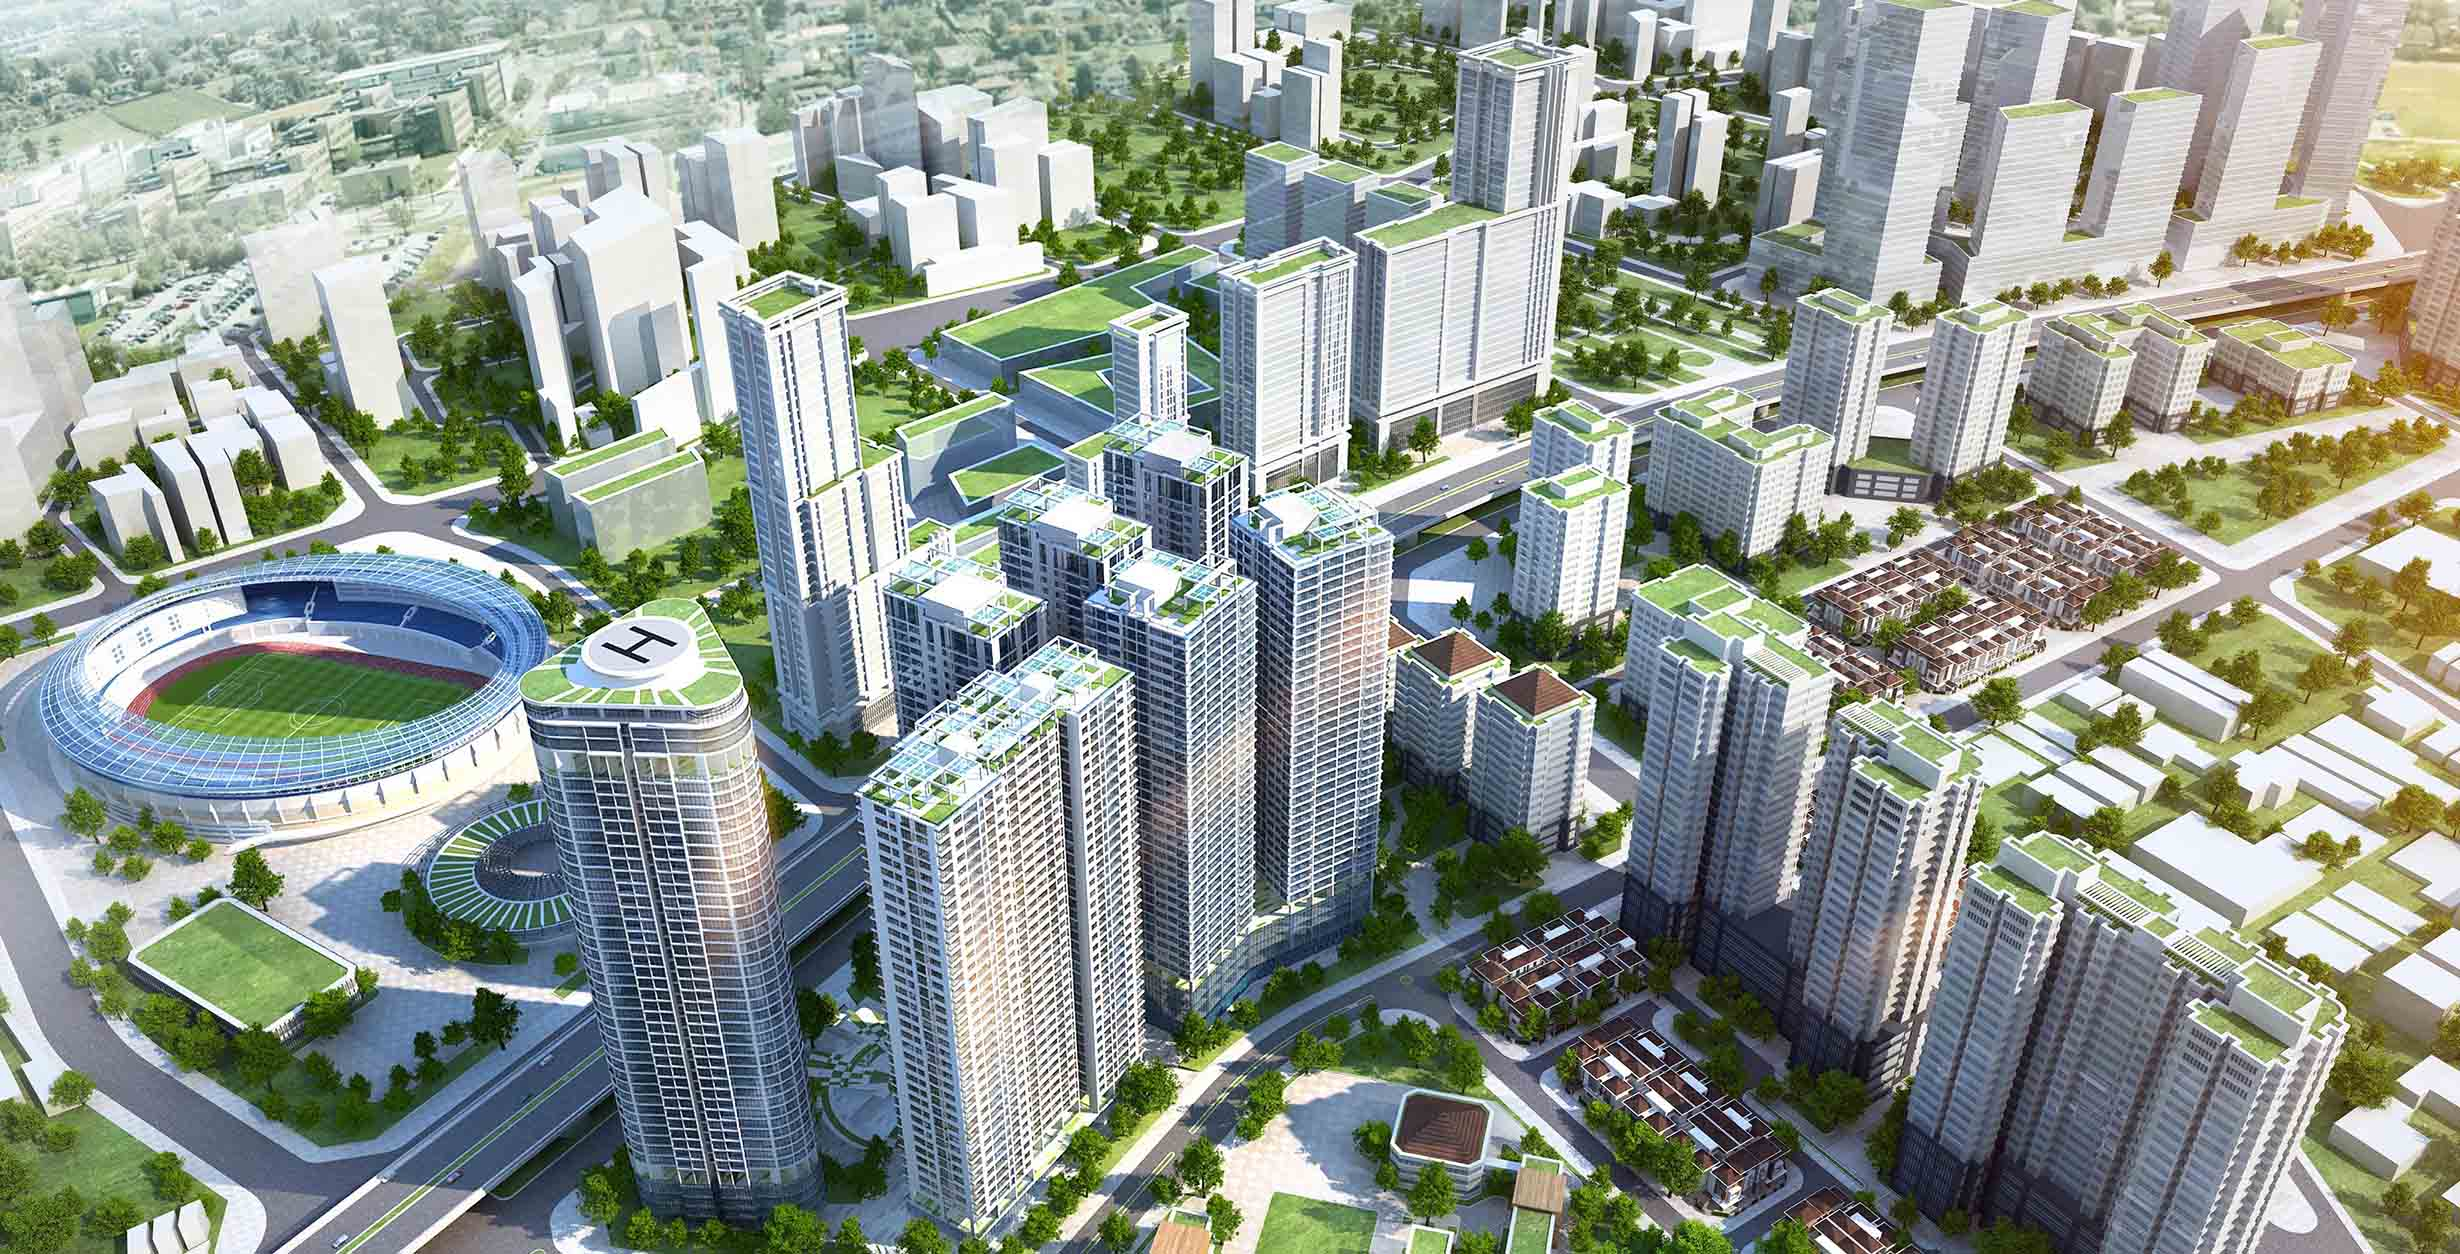 Real Estate in Vietnam: Five Ho Chi Minh City Real Estate Developments to  Watch | Vietcetera